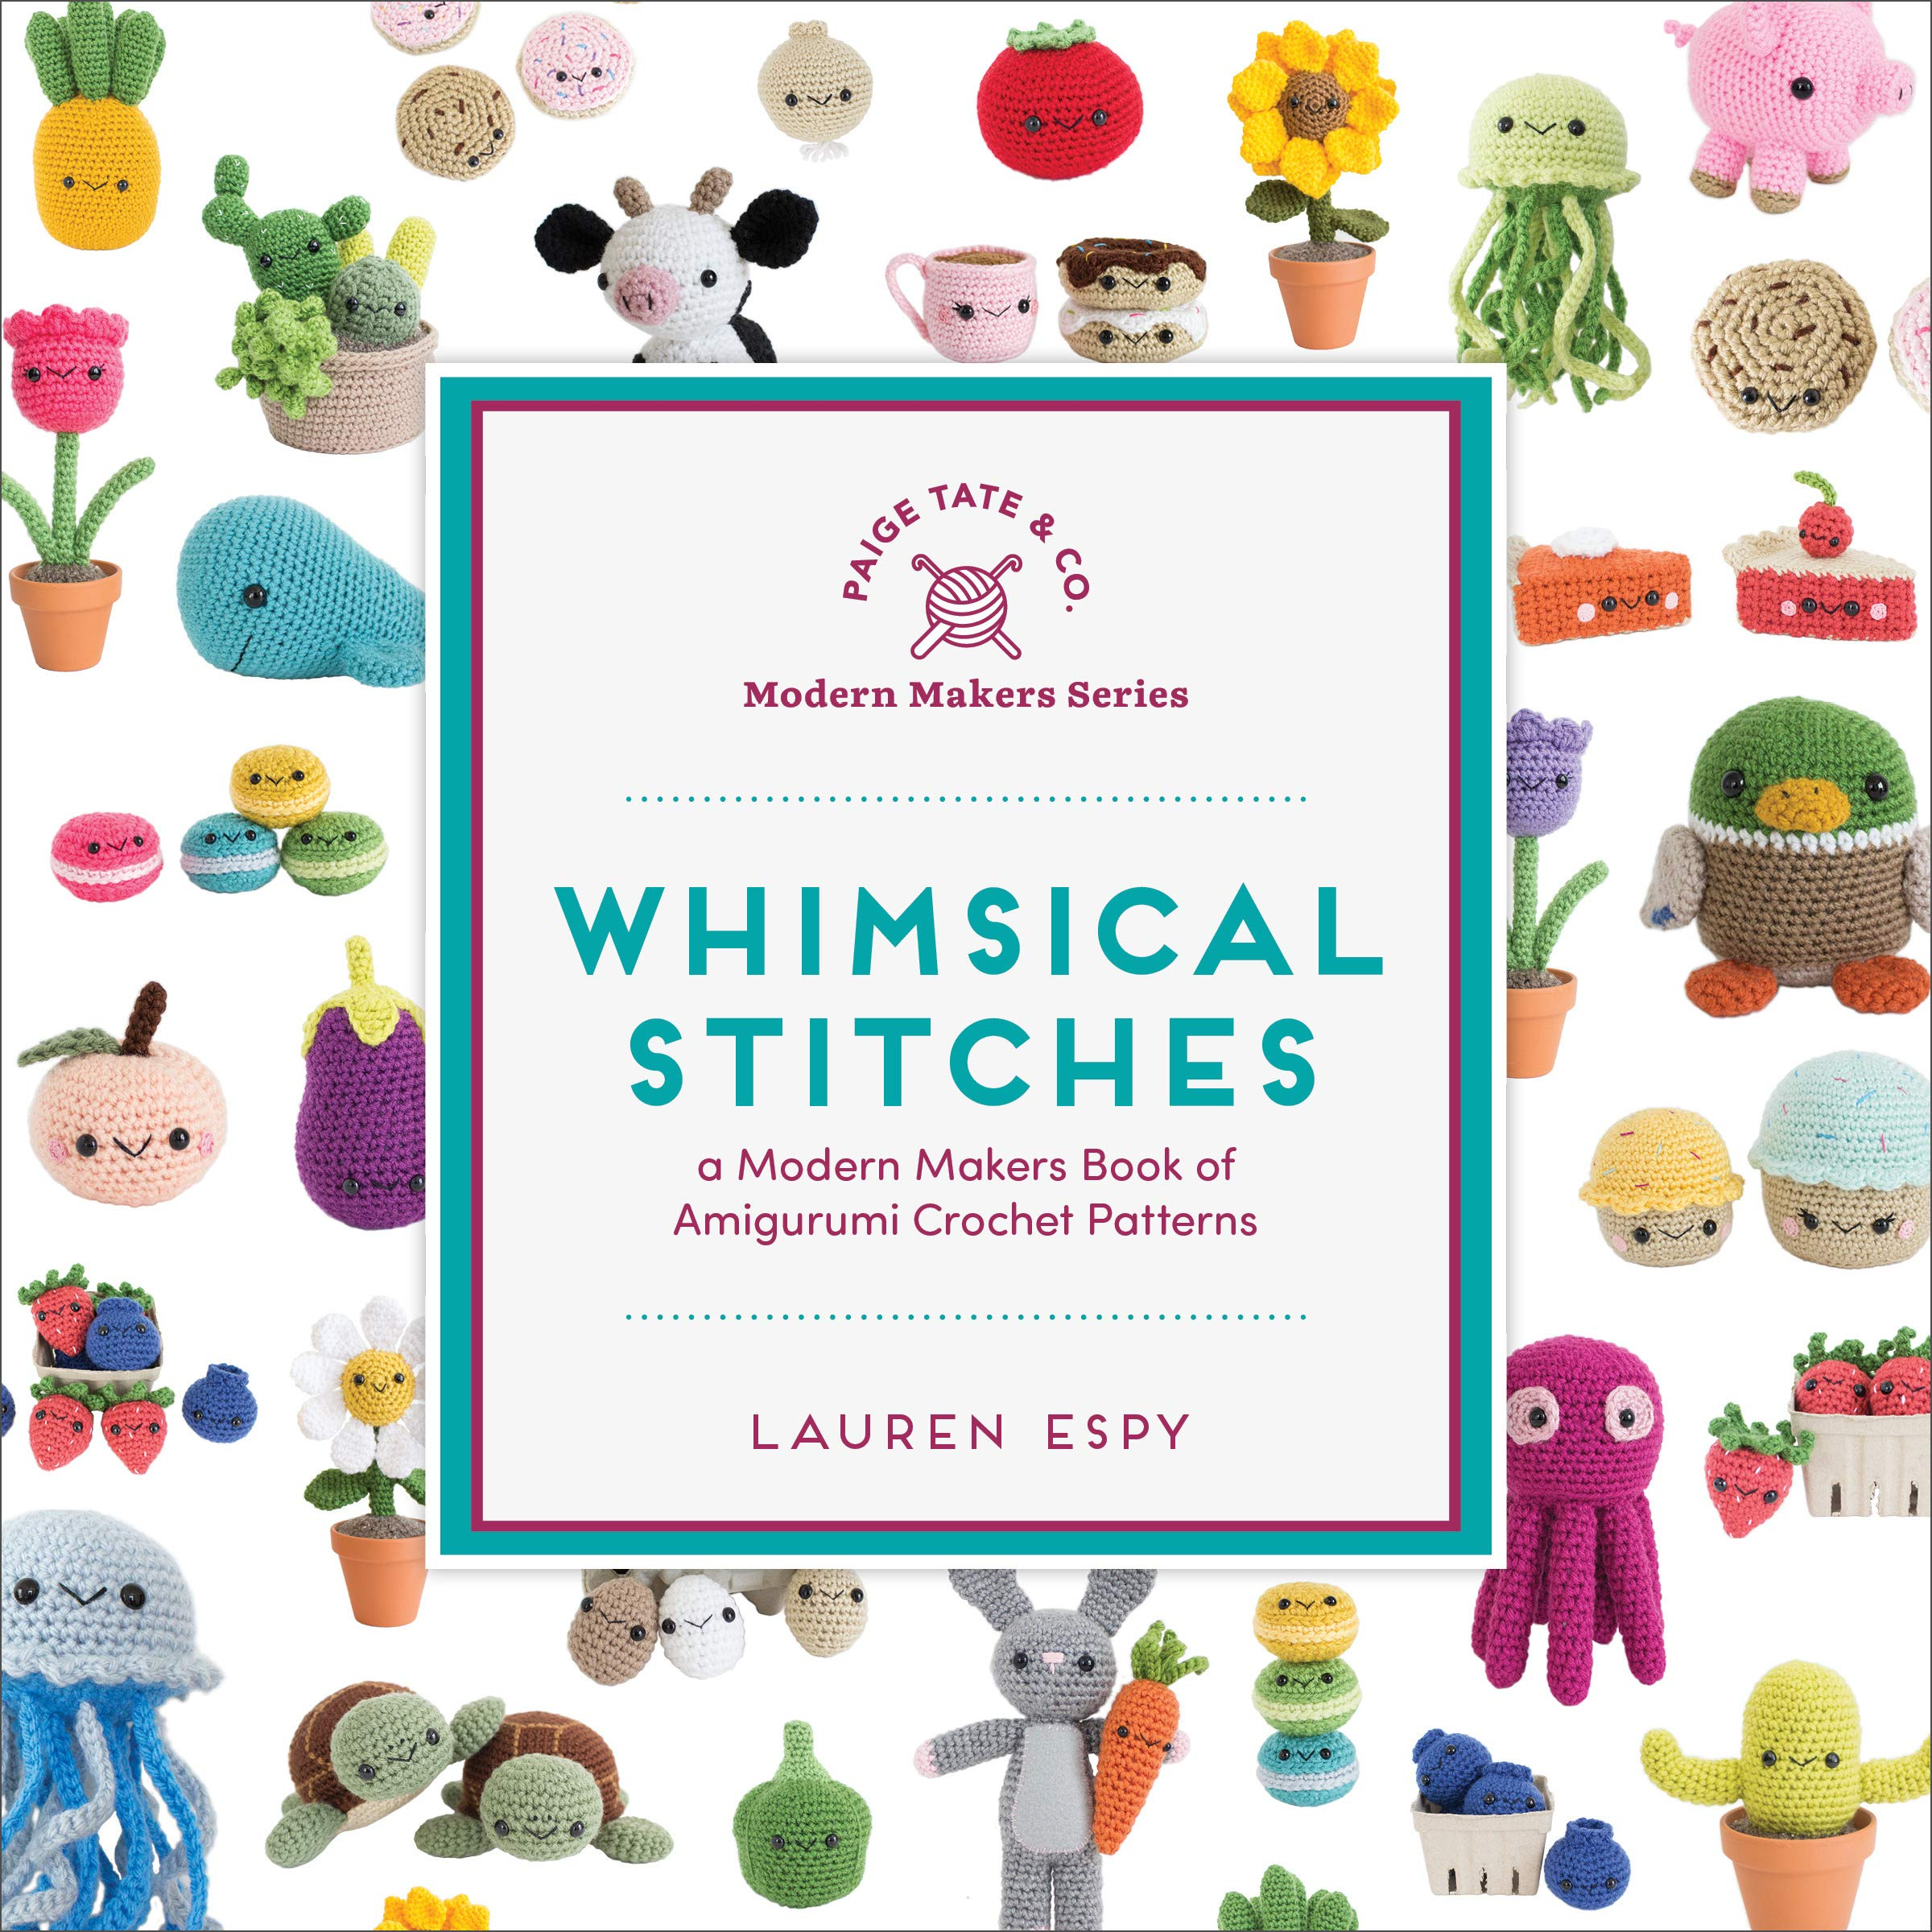 Whimsical Stitches: A Modern Makers Book of Amigurumi